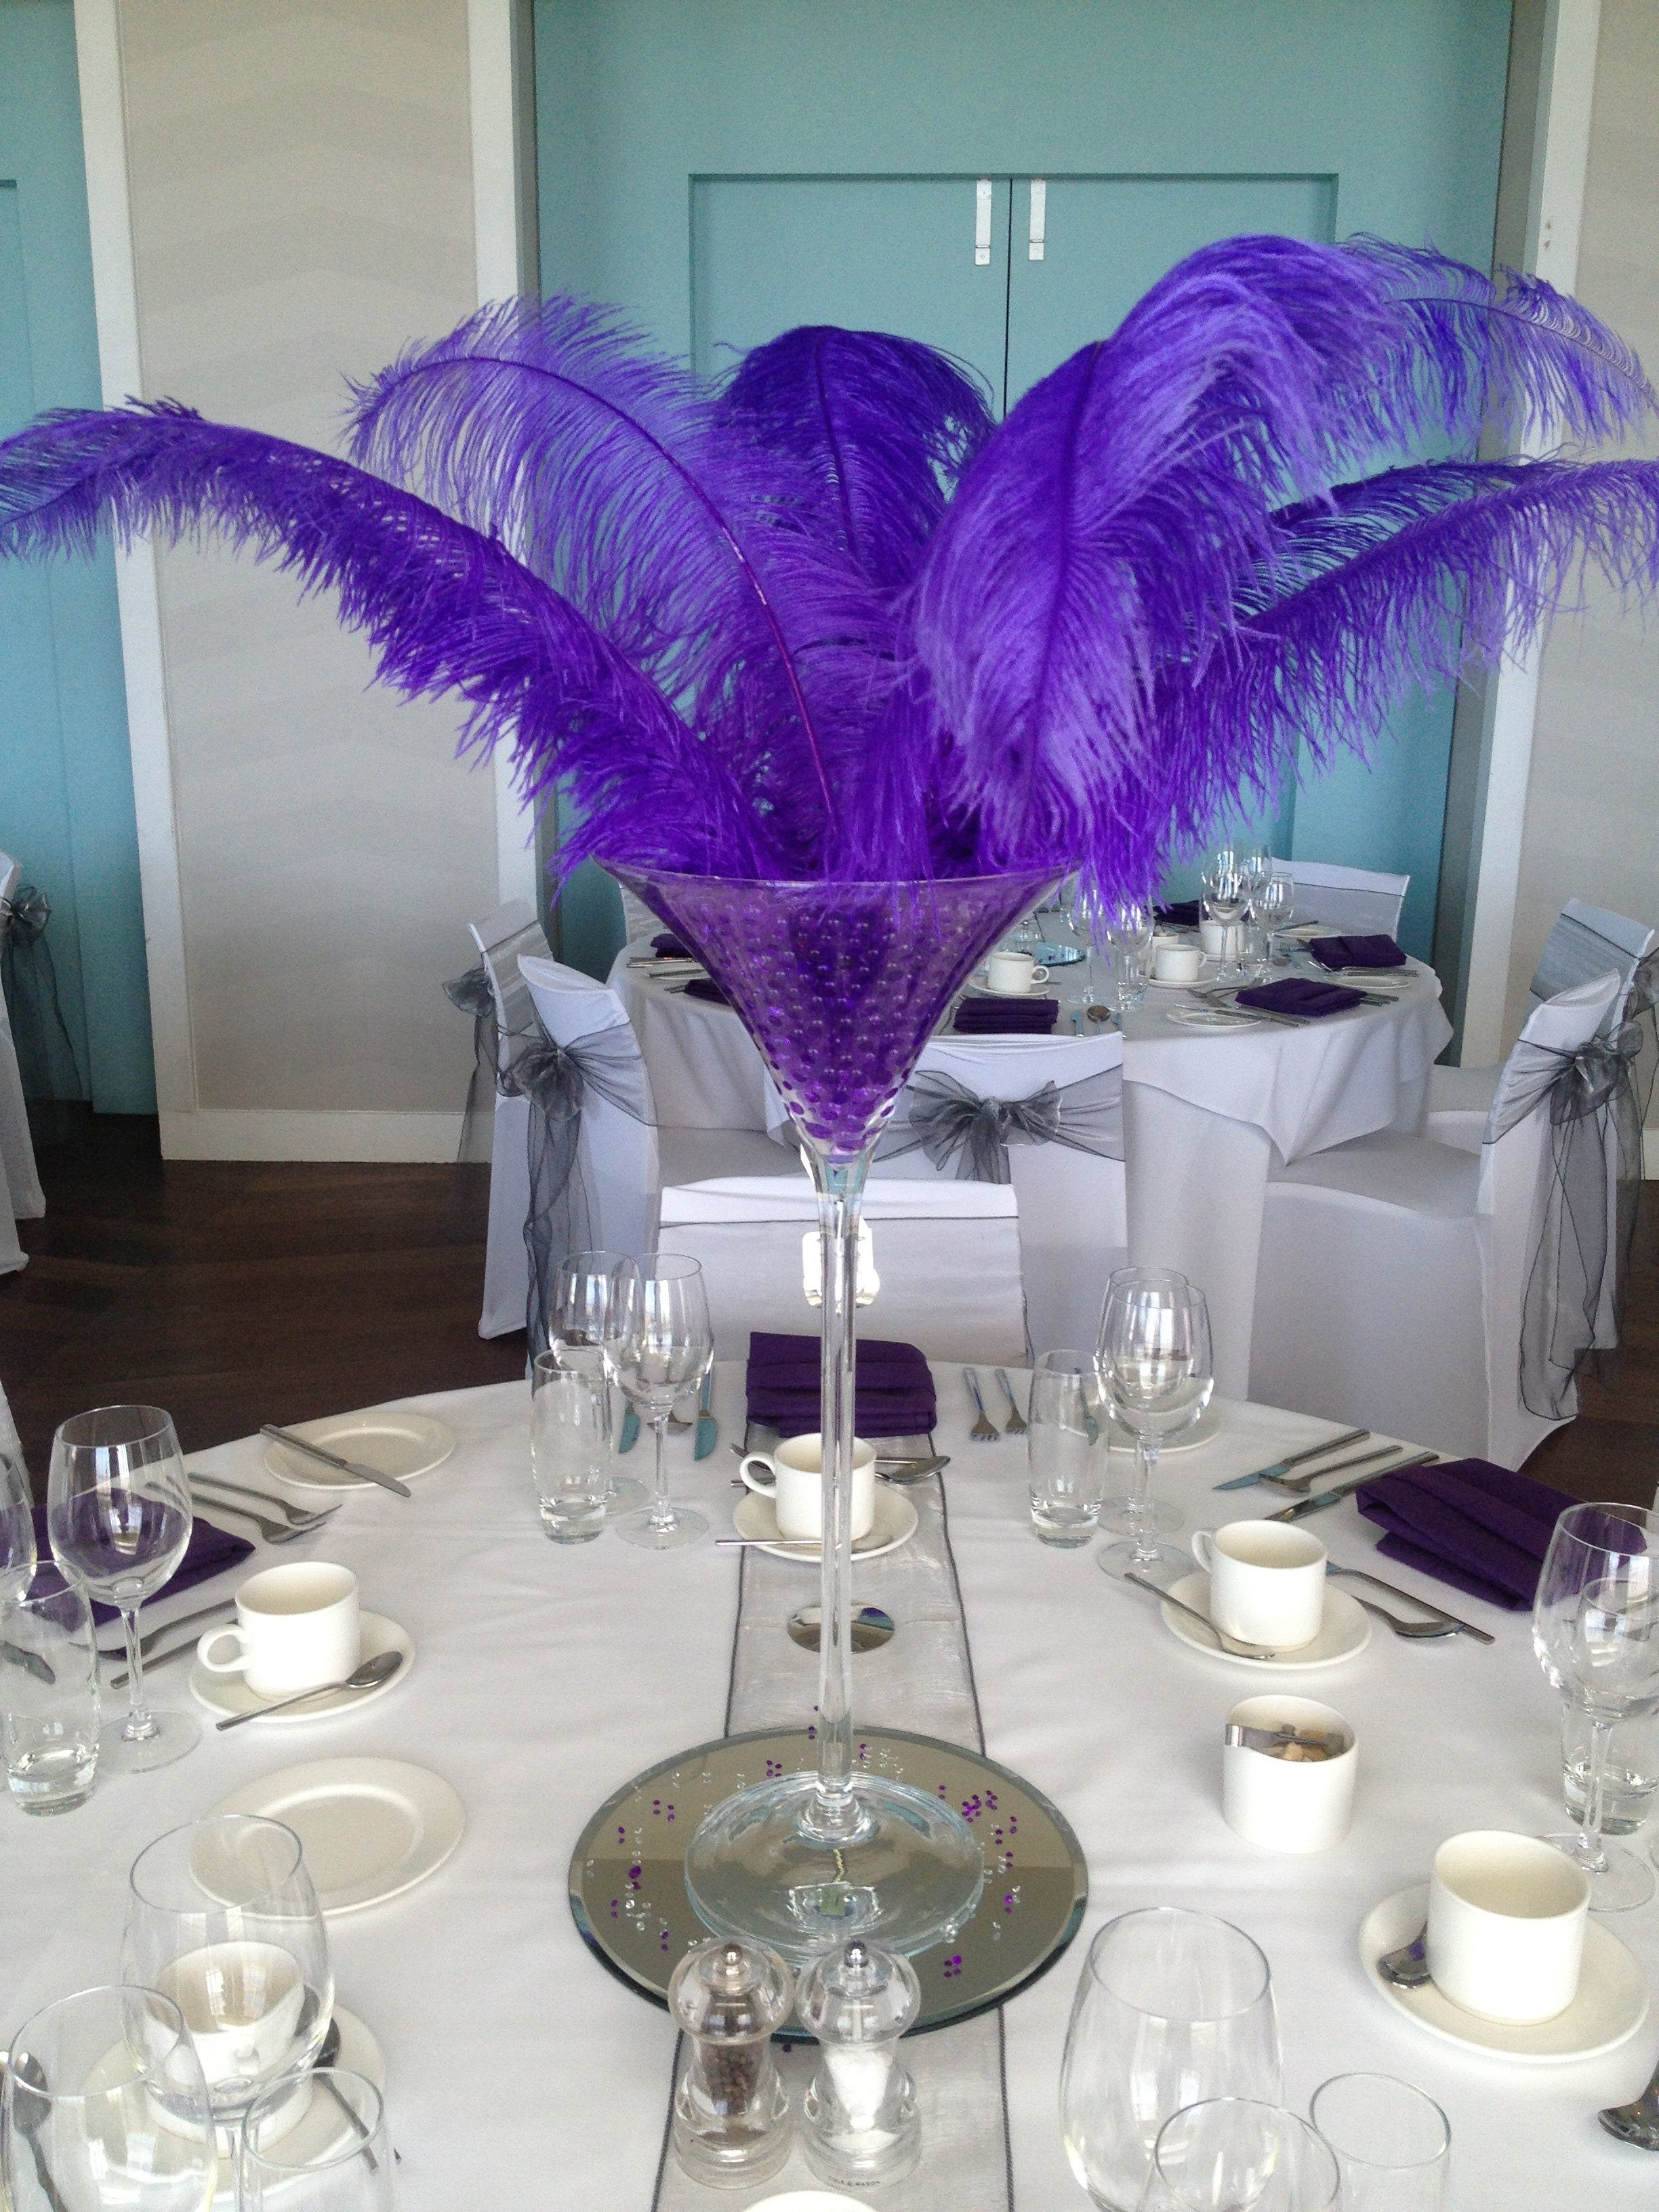 Ball Table Decorations Too Big And Purple But What About Smallershorted Version Seems